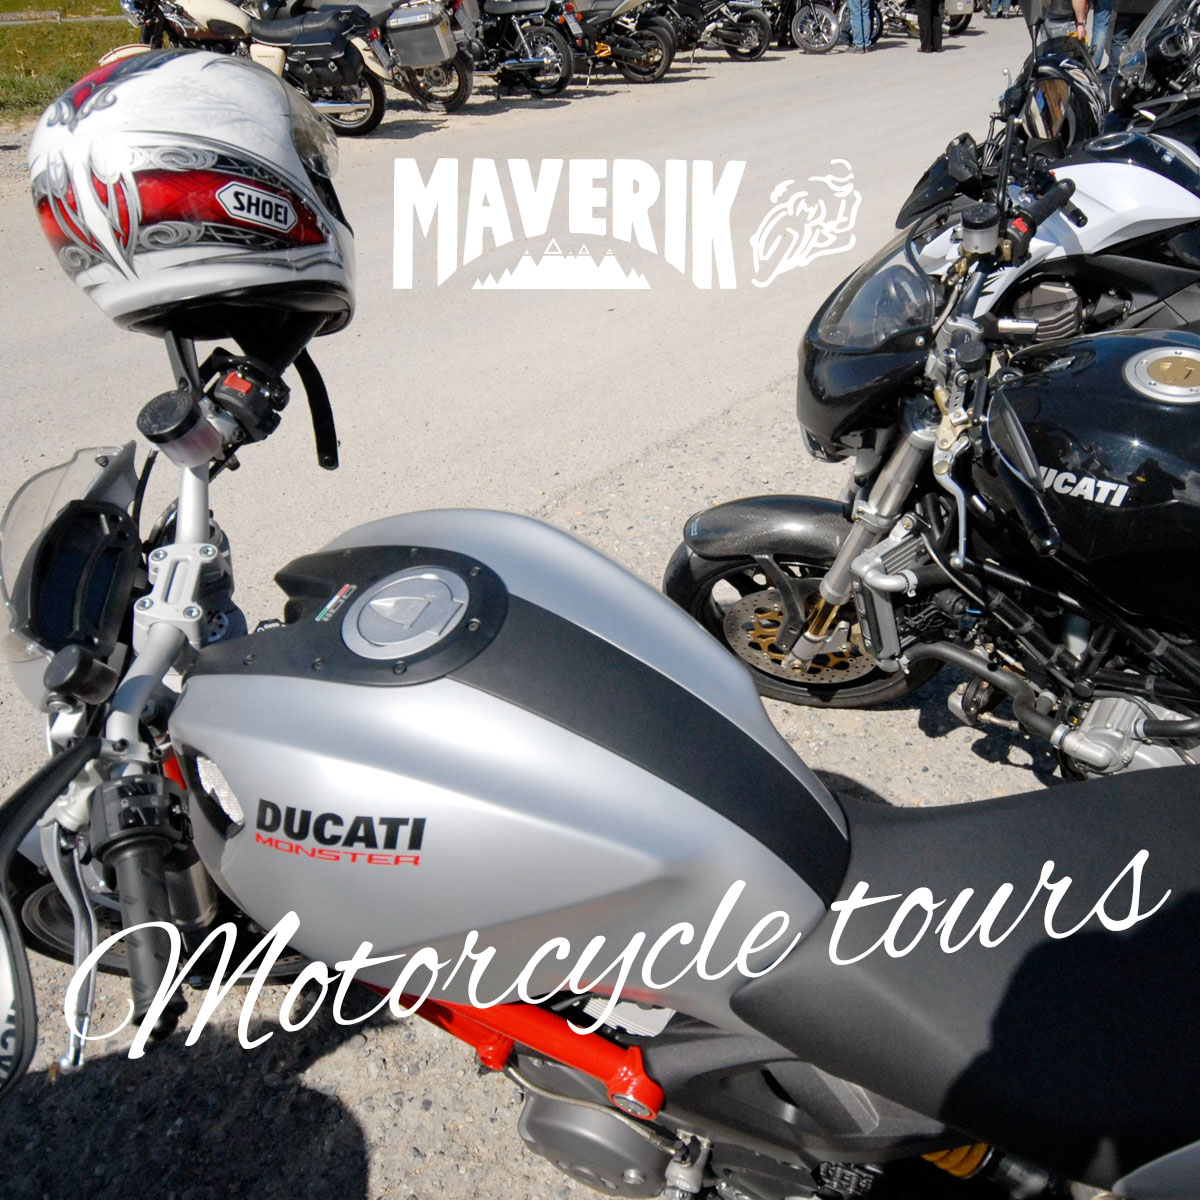 Maverik Motorcycle Pointer